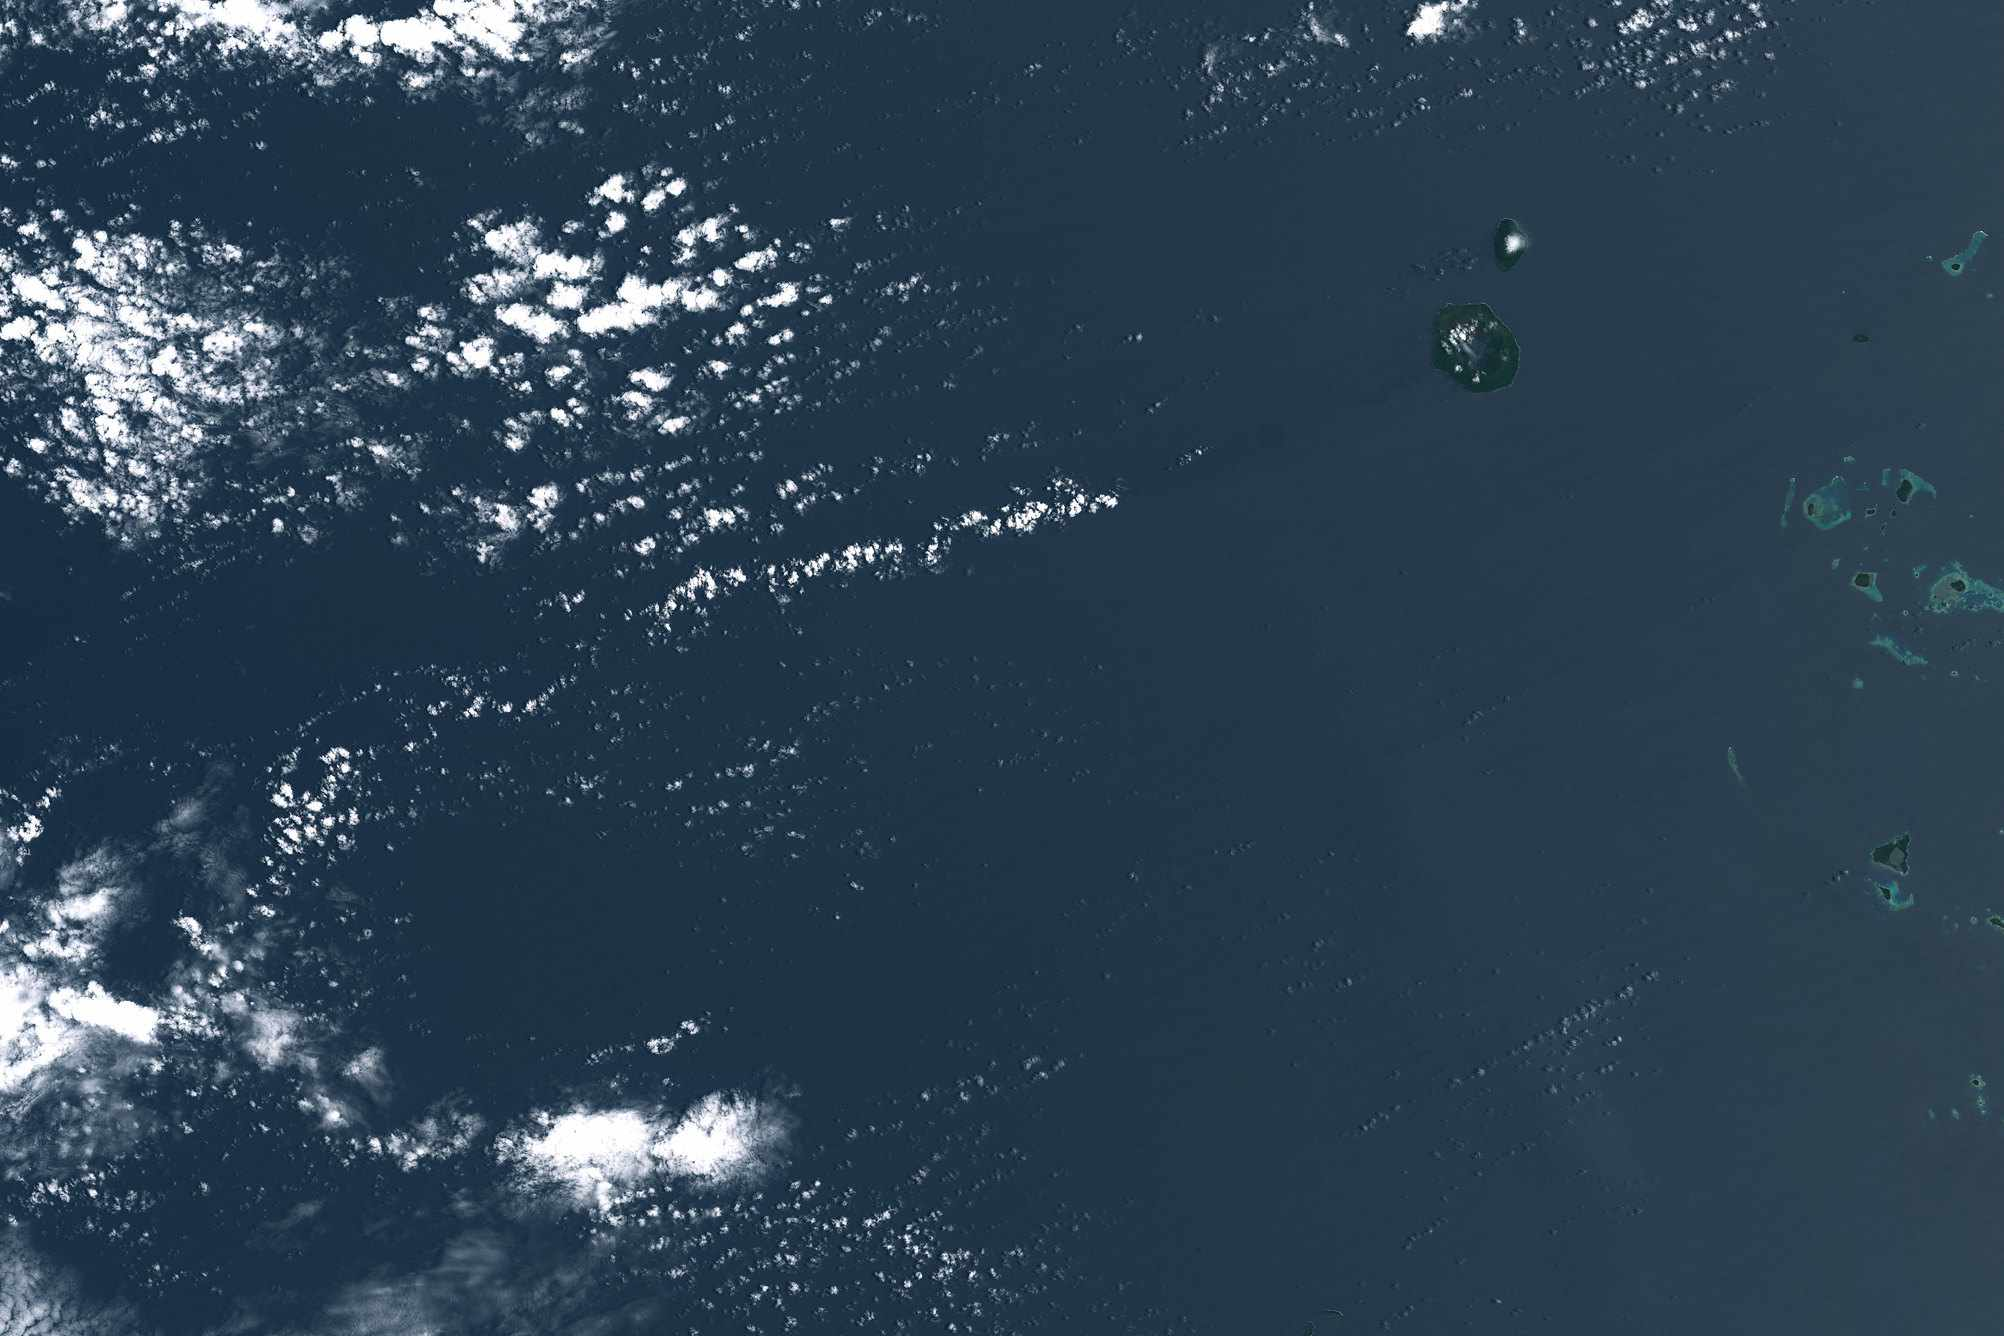 Satellite imagery of new island surrounded by sea and clouds